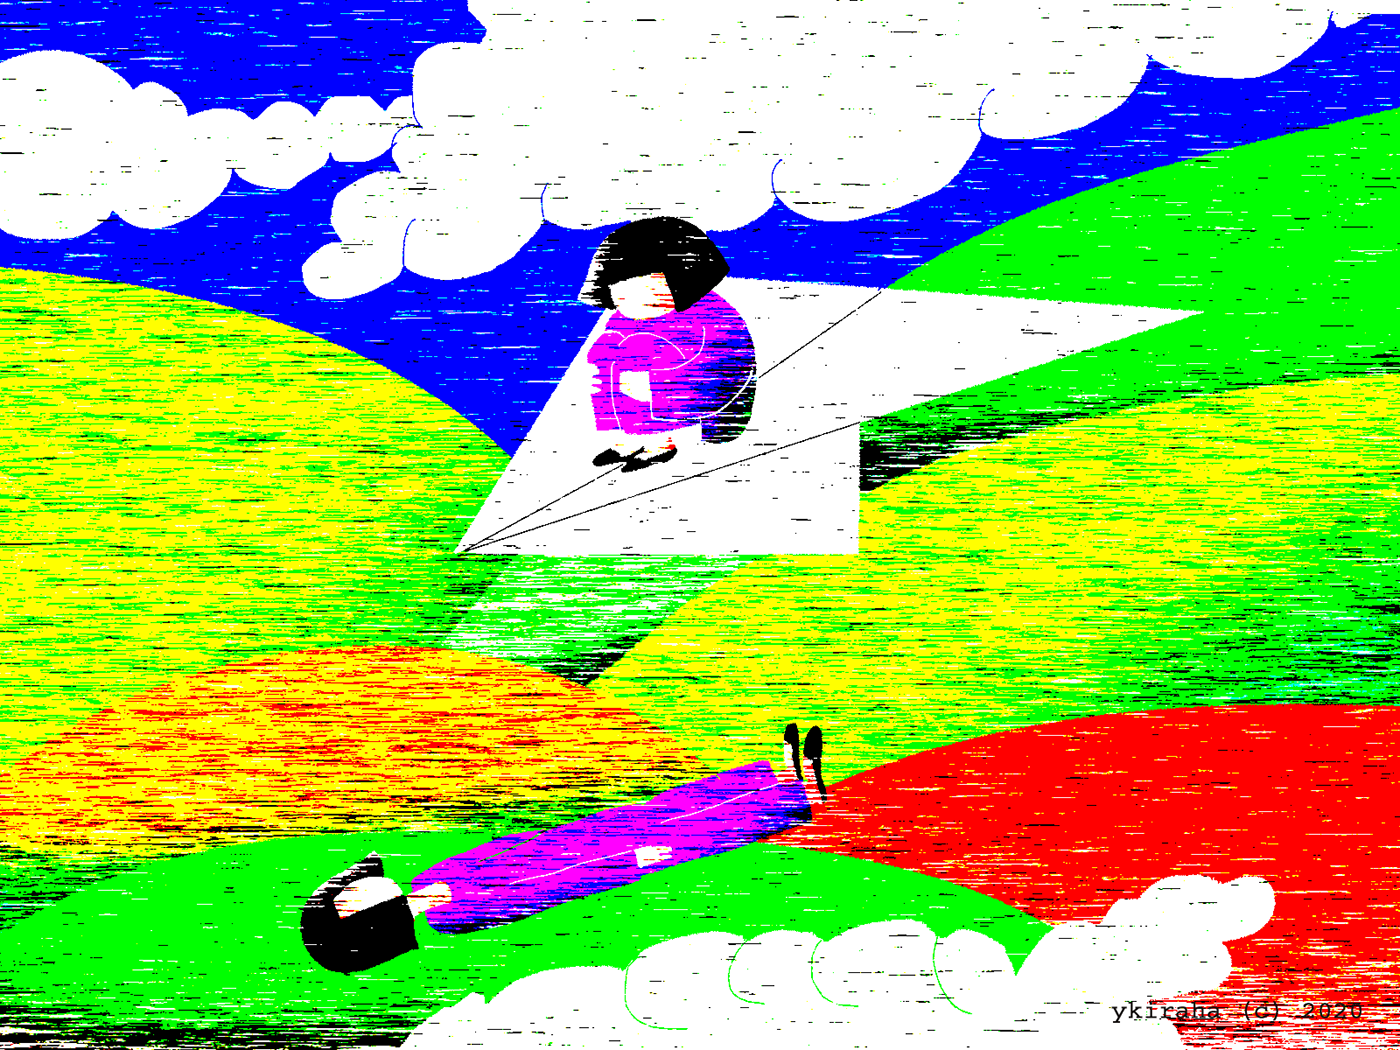 yukio kevin iraha's whimsical illustration about a girl riding paper plane looking at herself